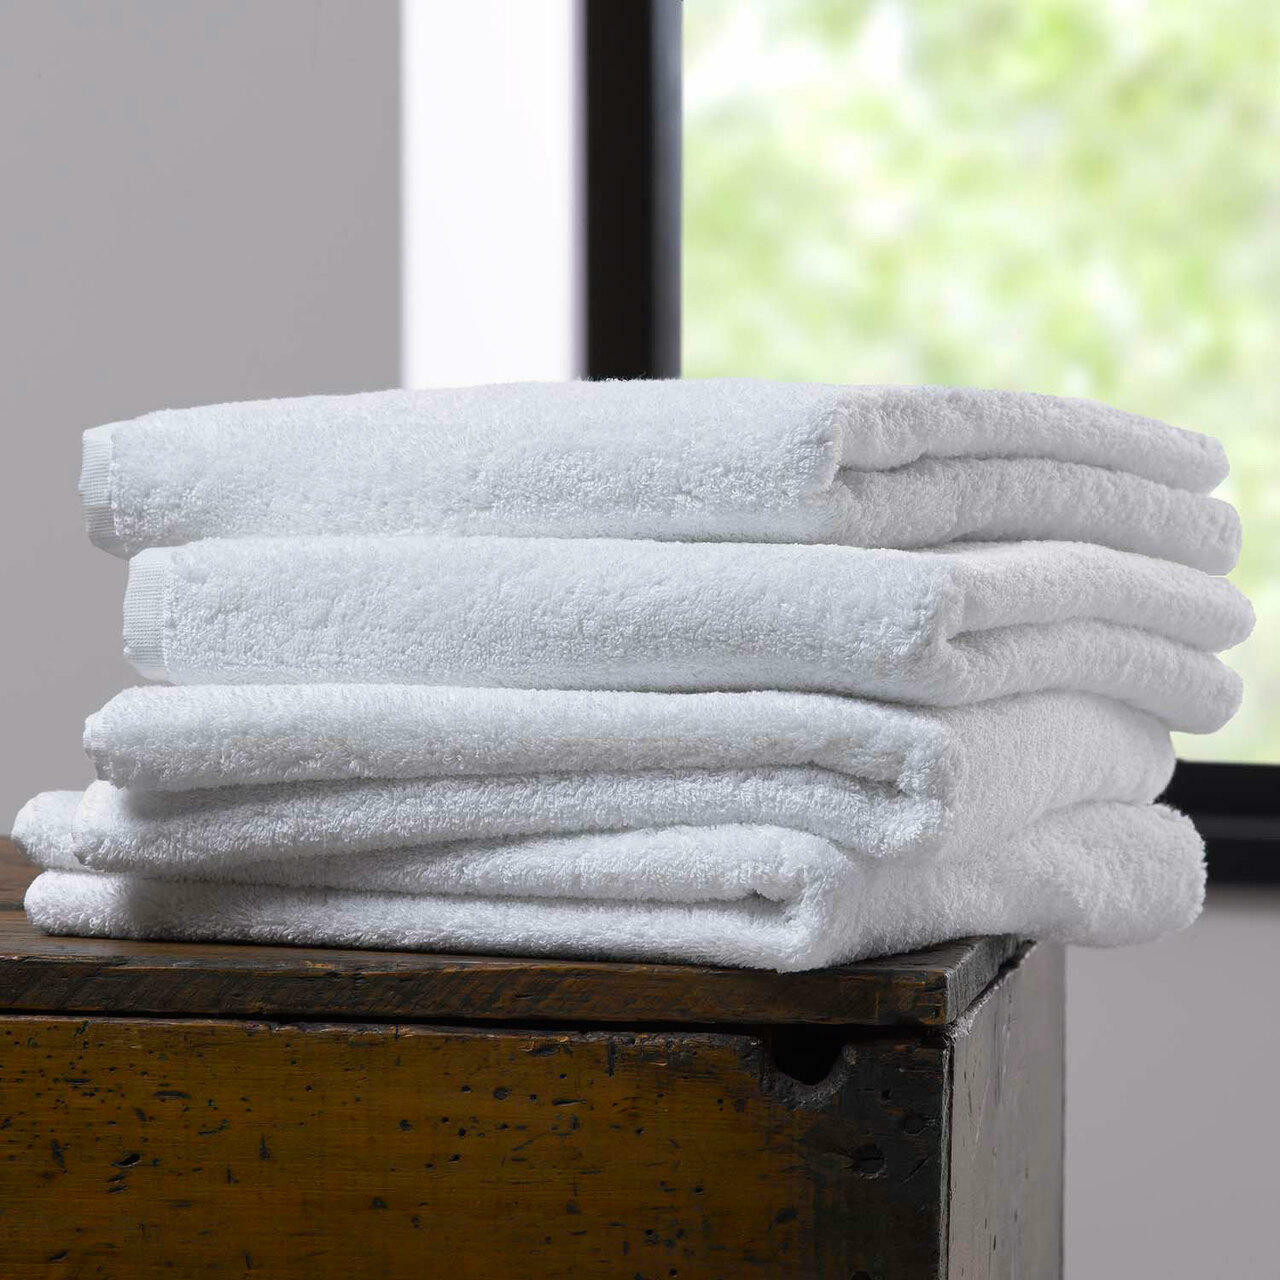 WestPoint Hospitality by Martex Martex Green Towel Collection by Westpoint